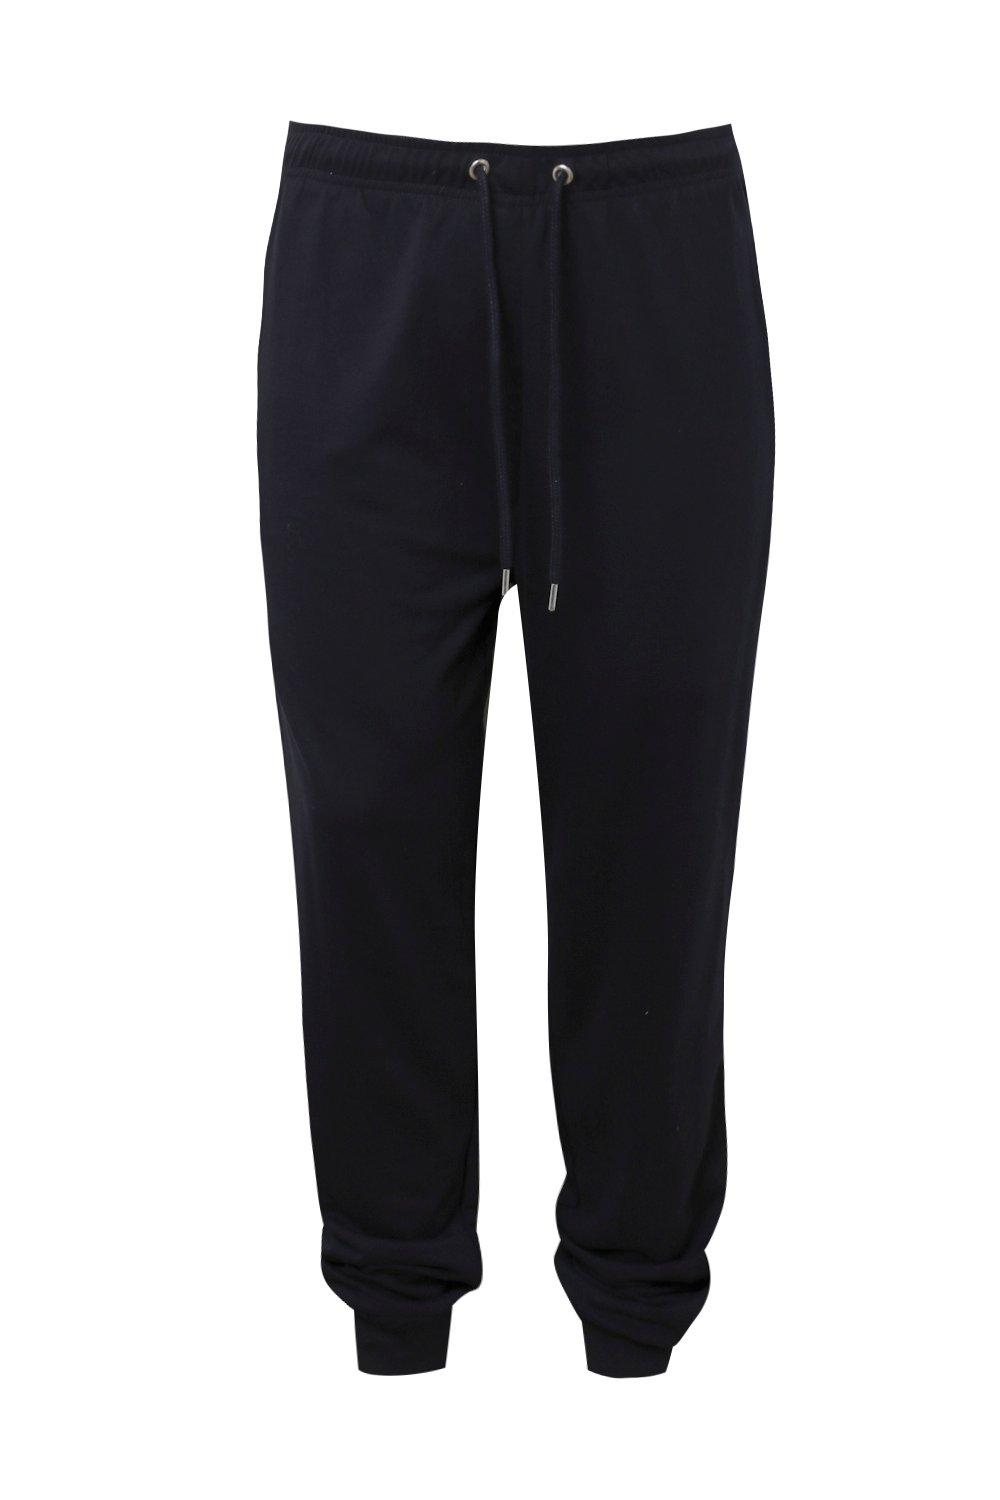 boohooMAN navy Big And Tall MAN Joggers